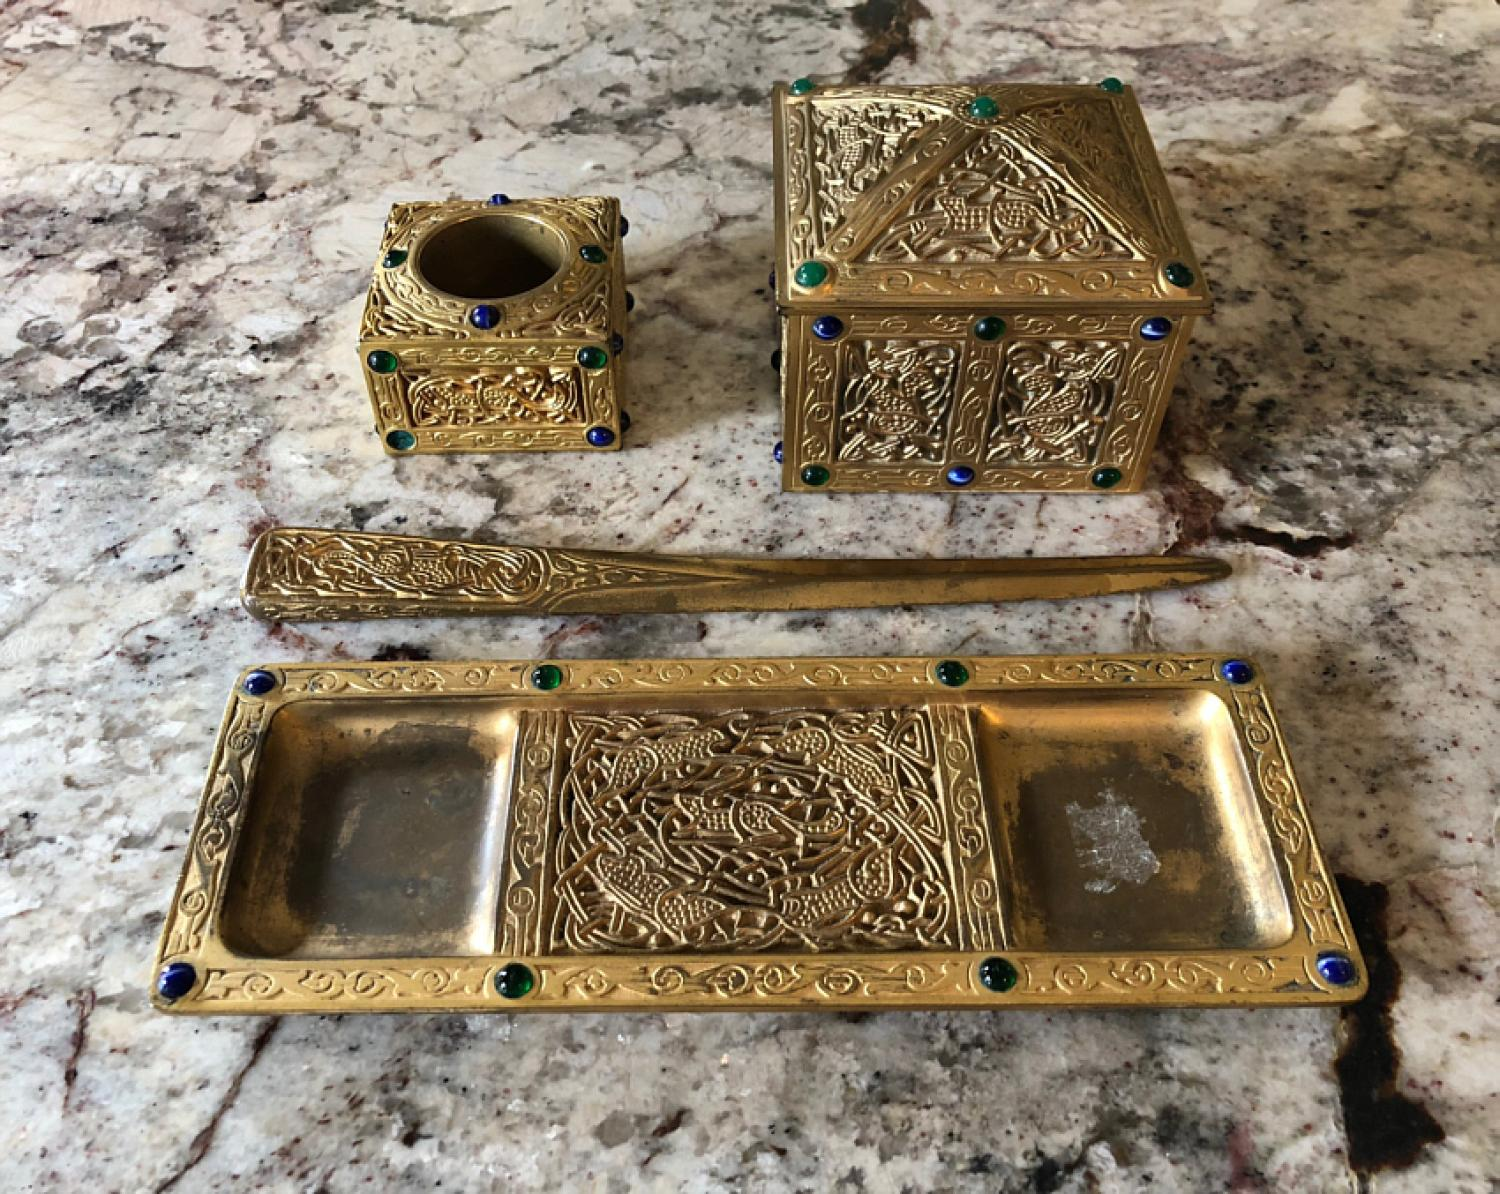 Antique Tiffany Studios bronze desk set with stones